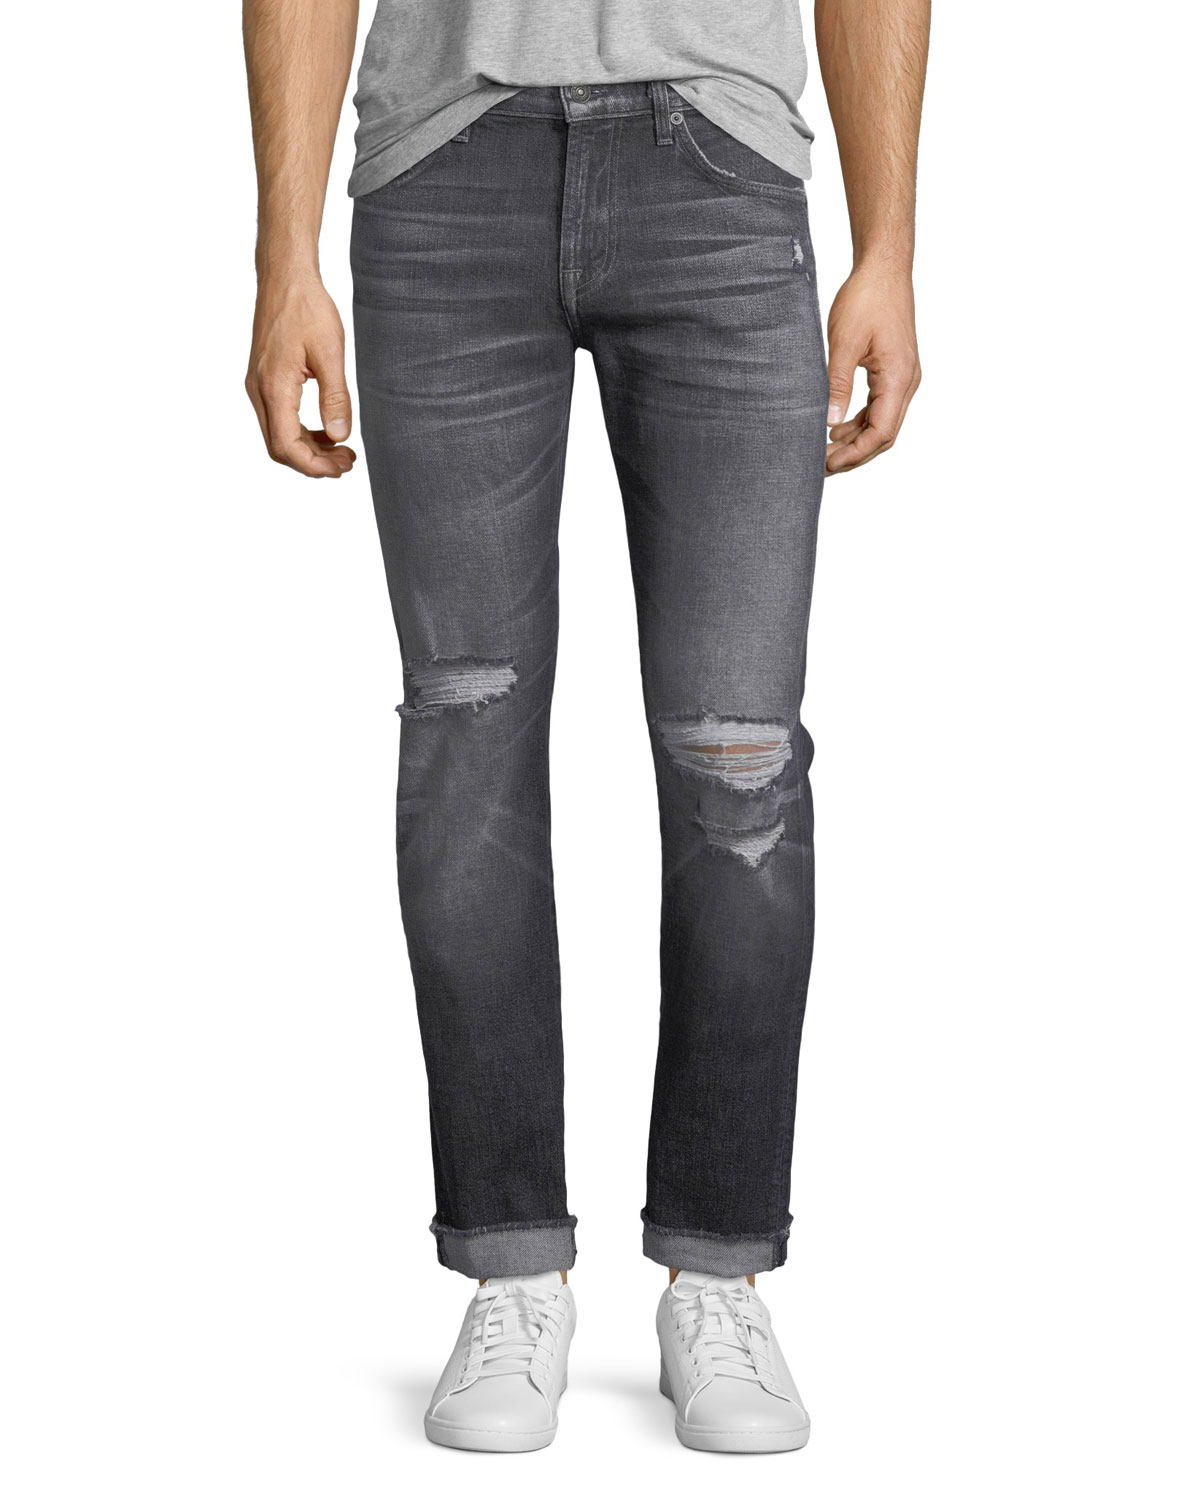 Men's Paxtyn Blot Blowout Skinny Jeans